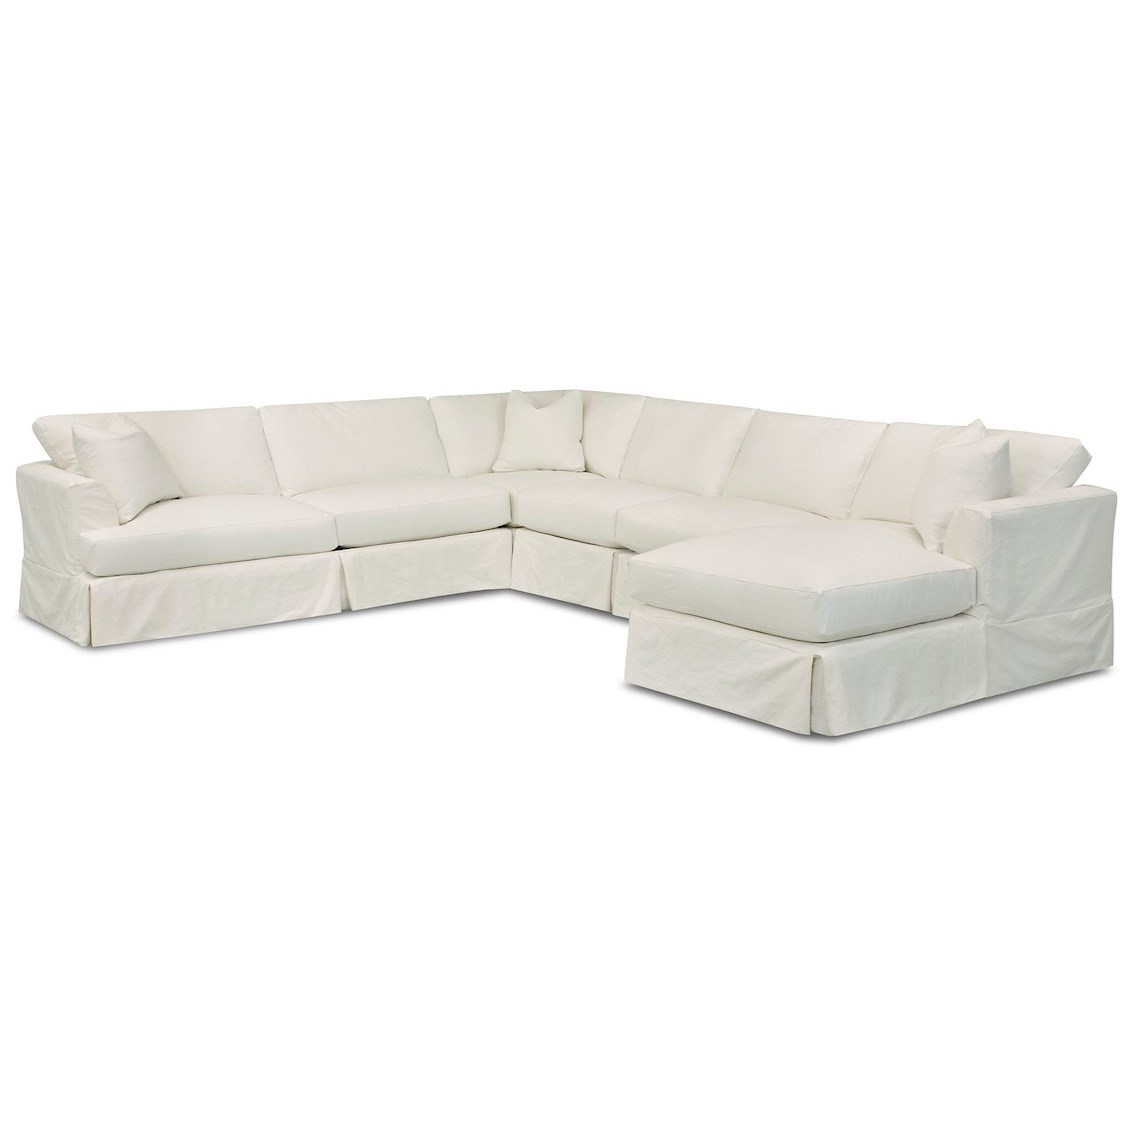 Klaussner Bentley 5 Seat Slipcover Sectional Sofa With Raf